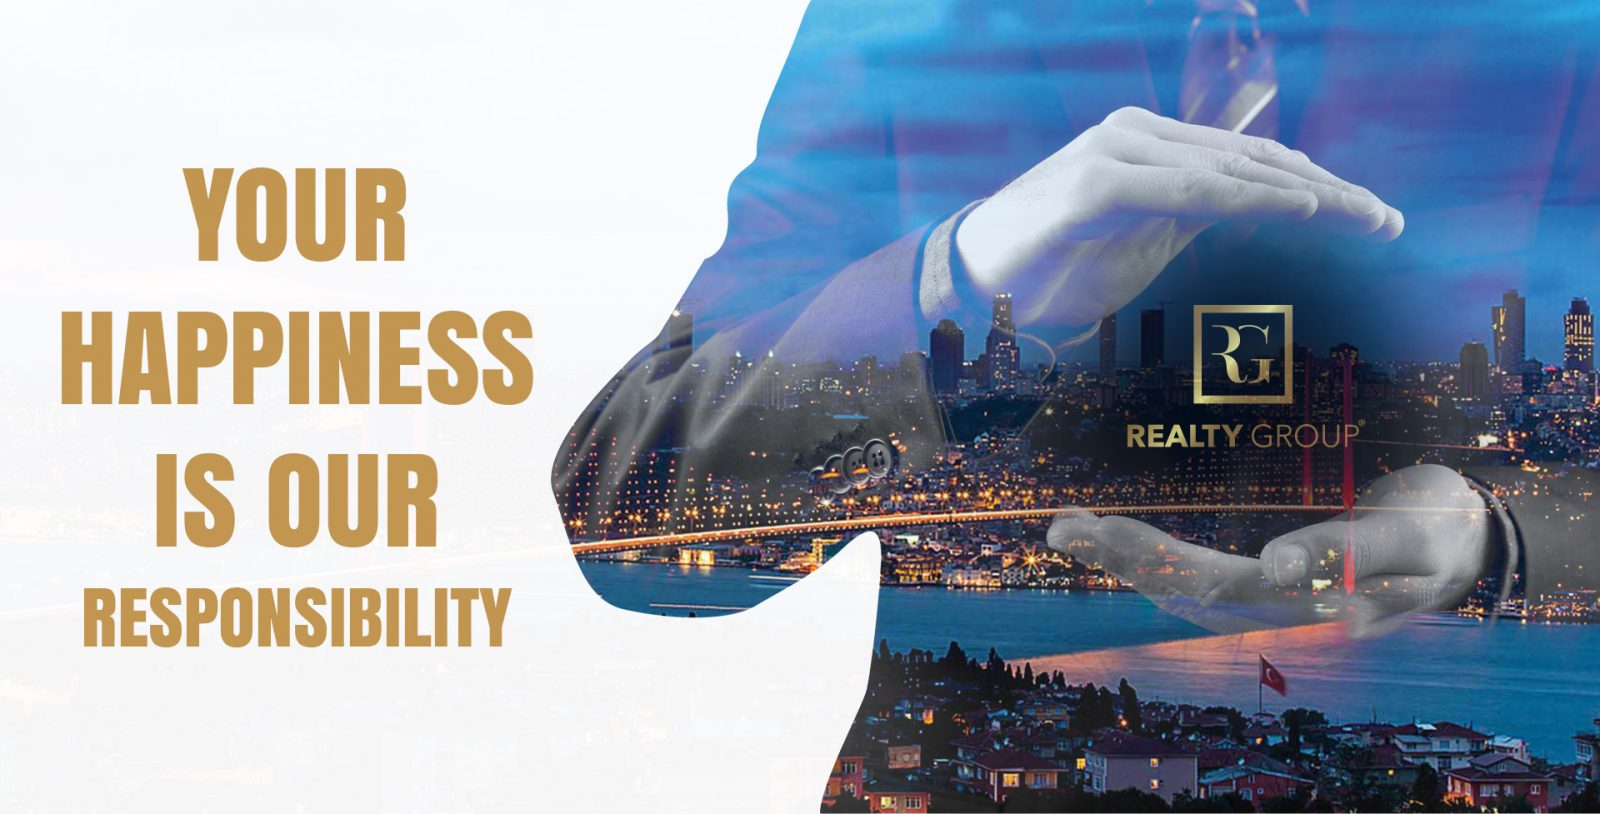 realty group, Mission and Vision